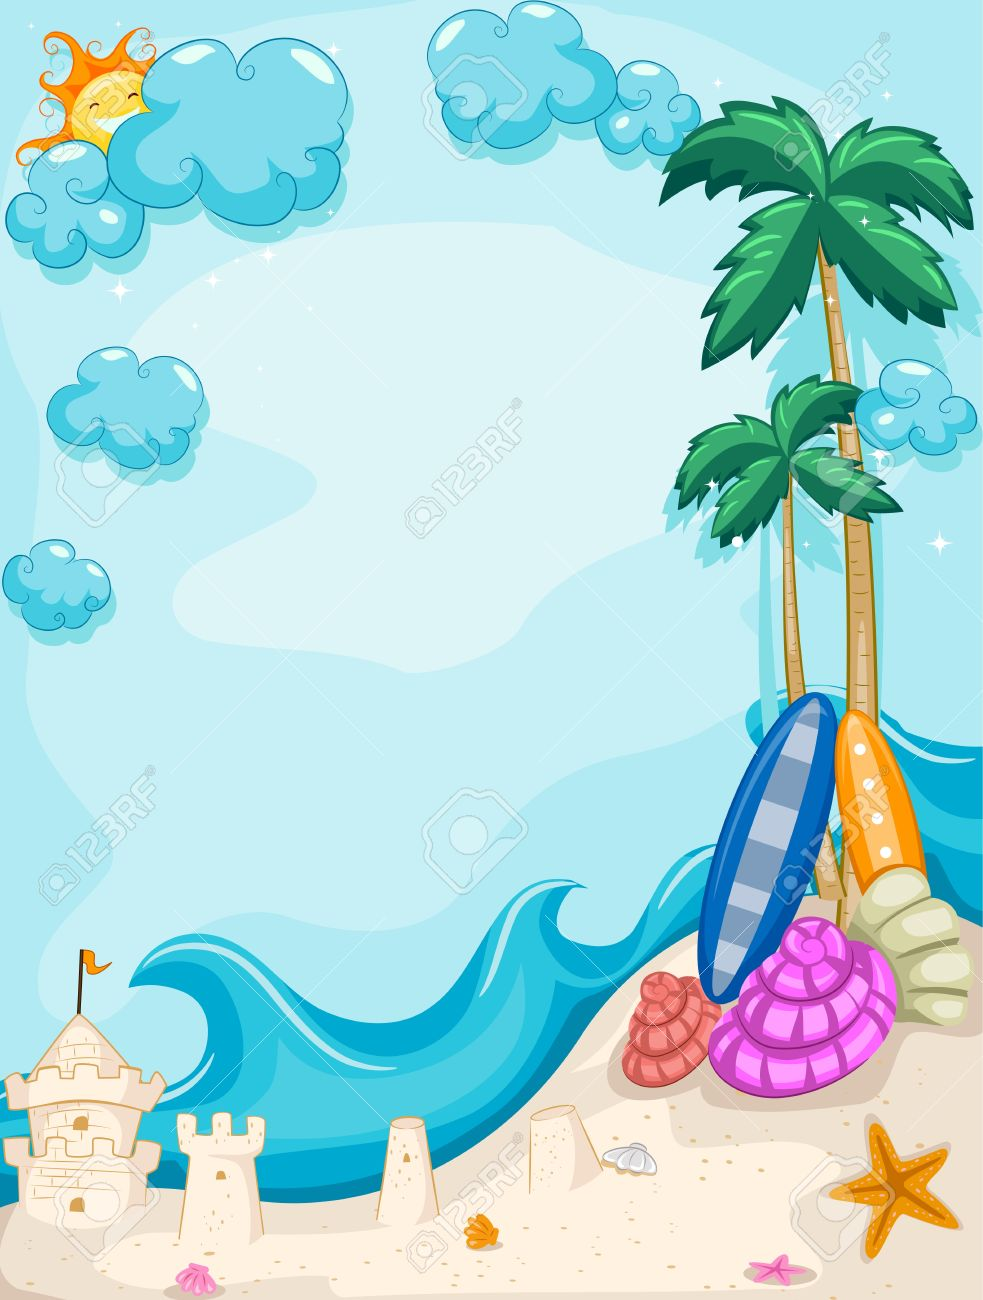 Microsoft clipart backgrounds vector free stock Background Illustration with a   Clipart Panda - Free ... vector free stock